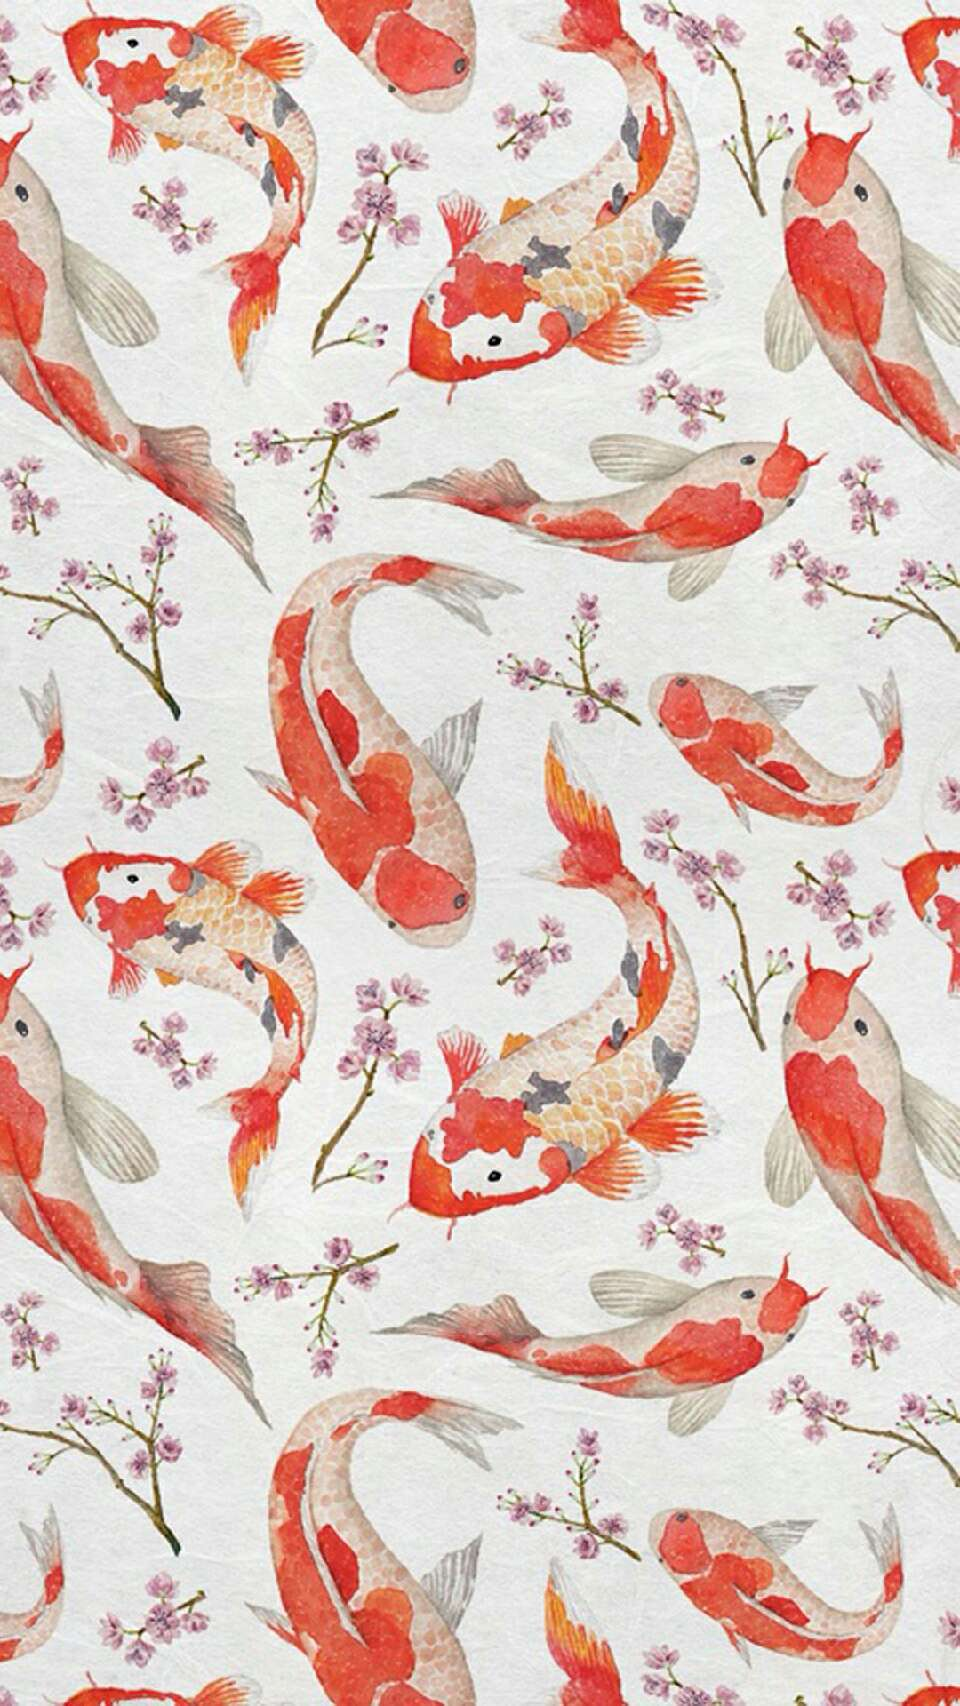 Koi fish are considered some of the most peaceful and beautiful fish, and you can imagine your own little pond